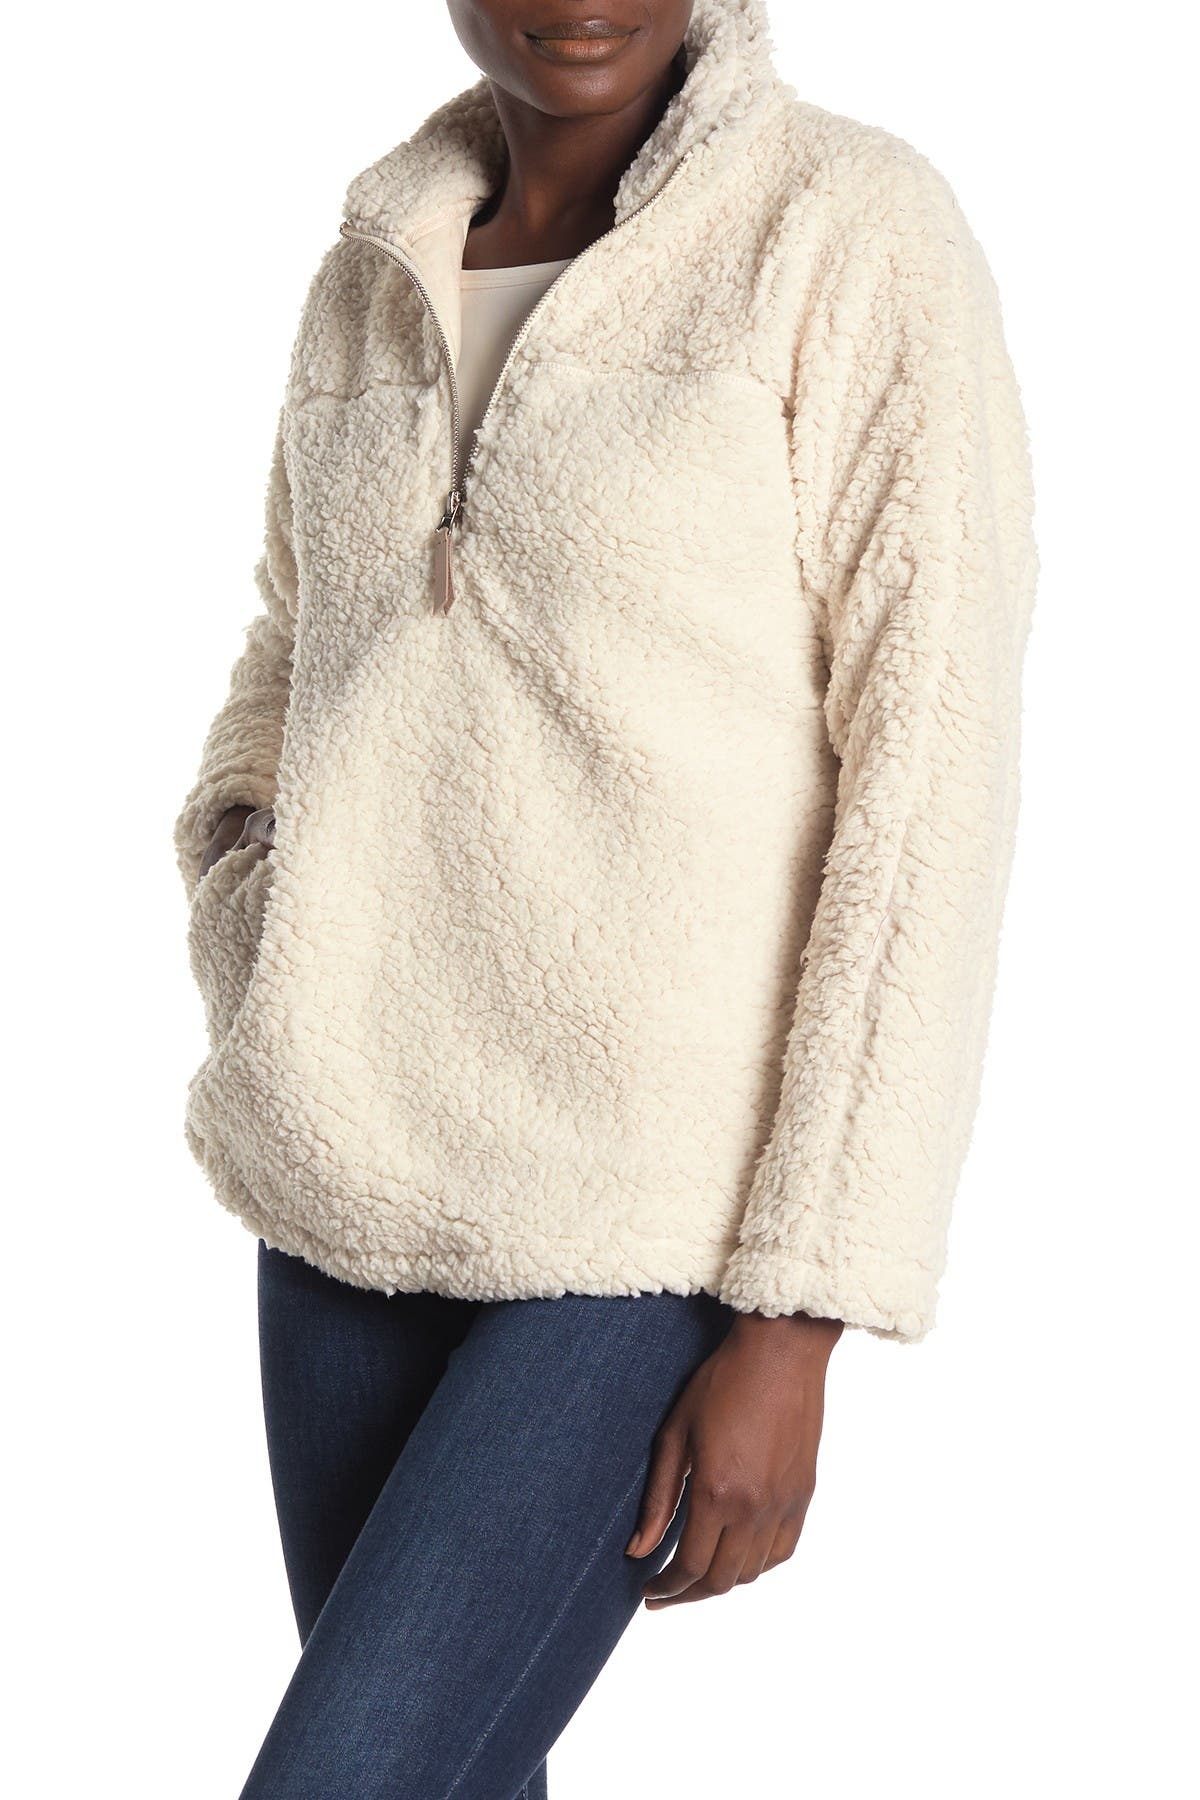 Image of Elodie Half Zip Faux Shearling Pullover